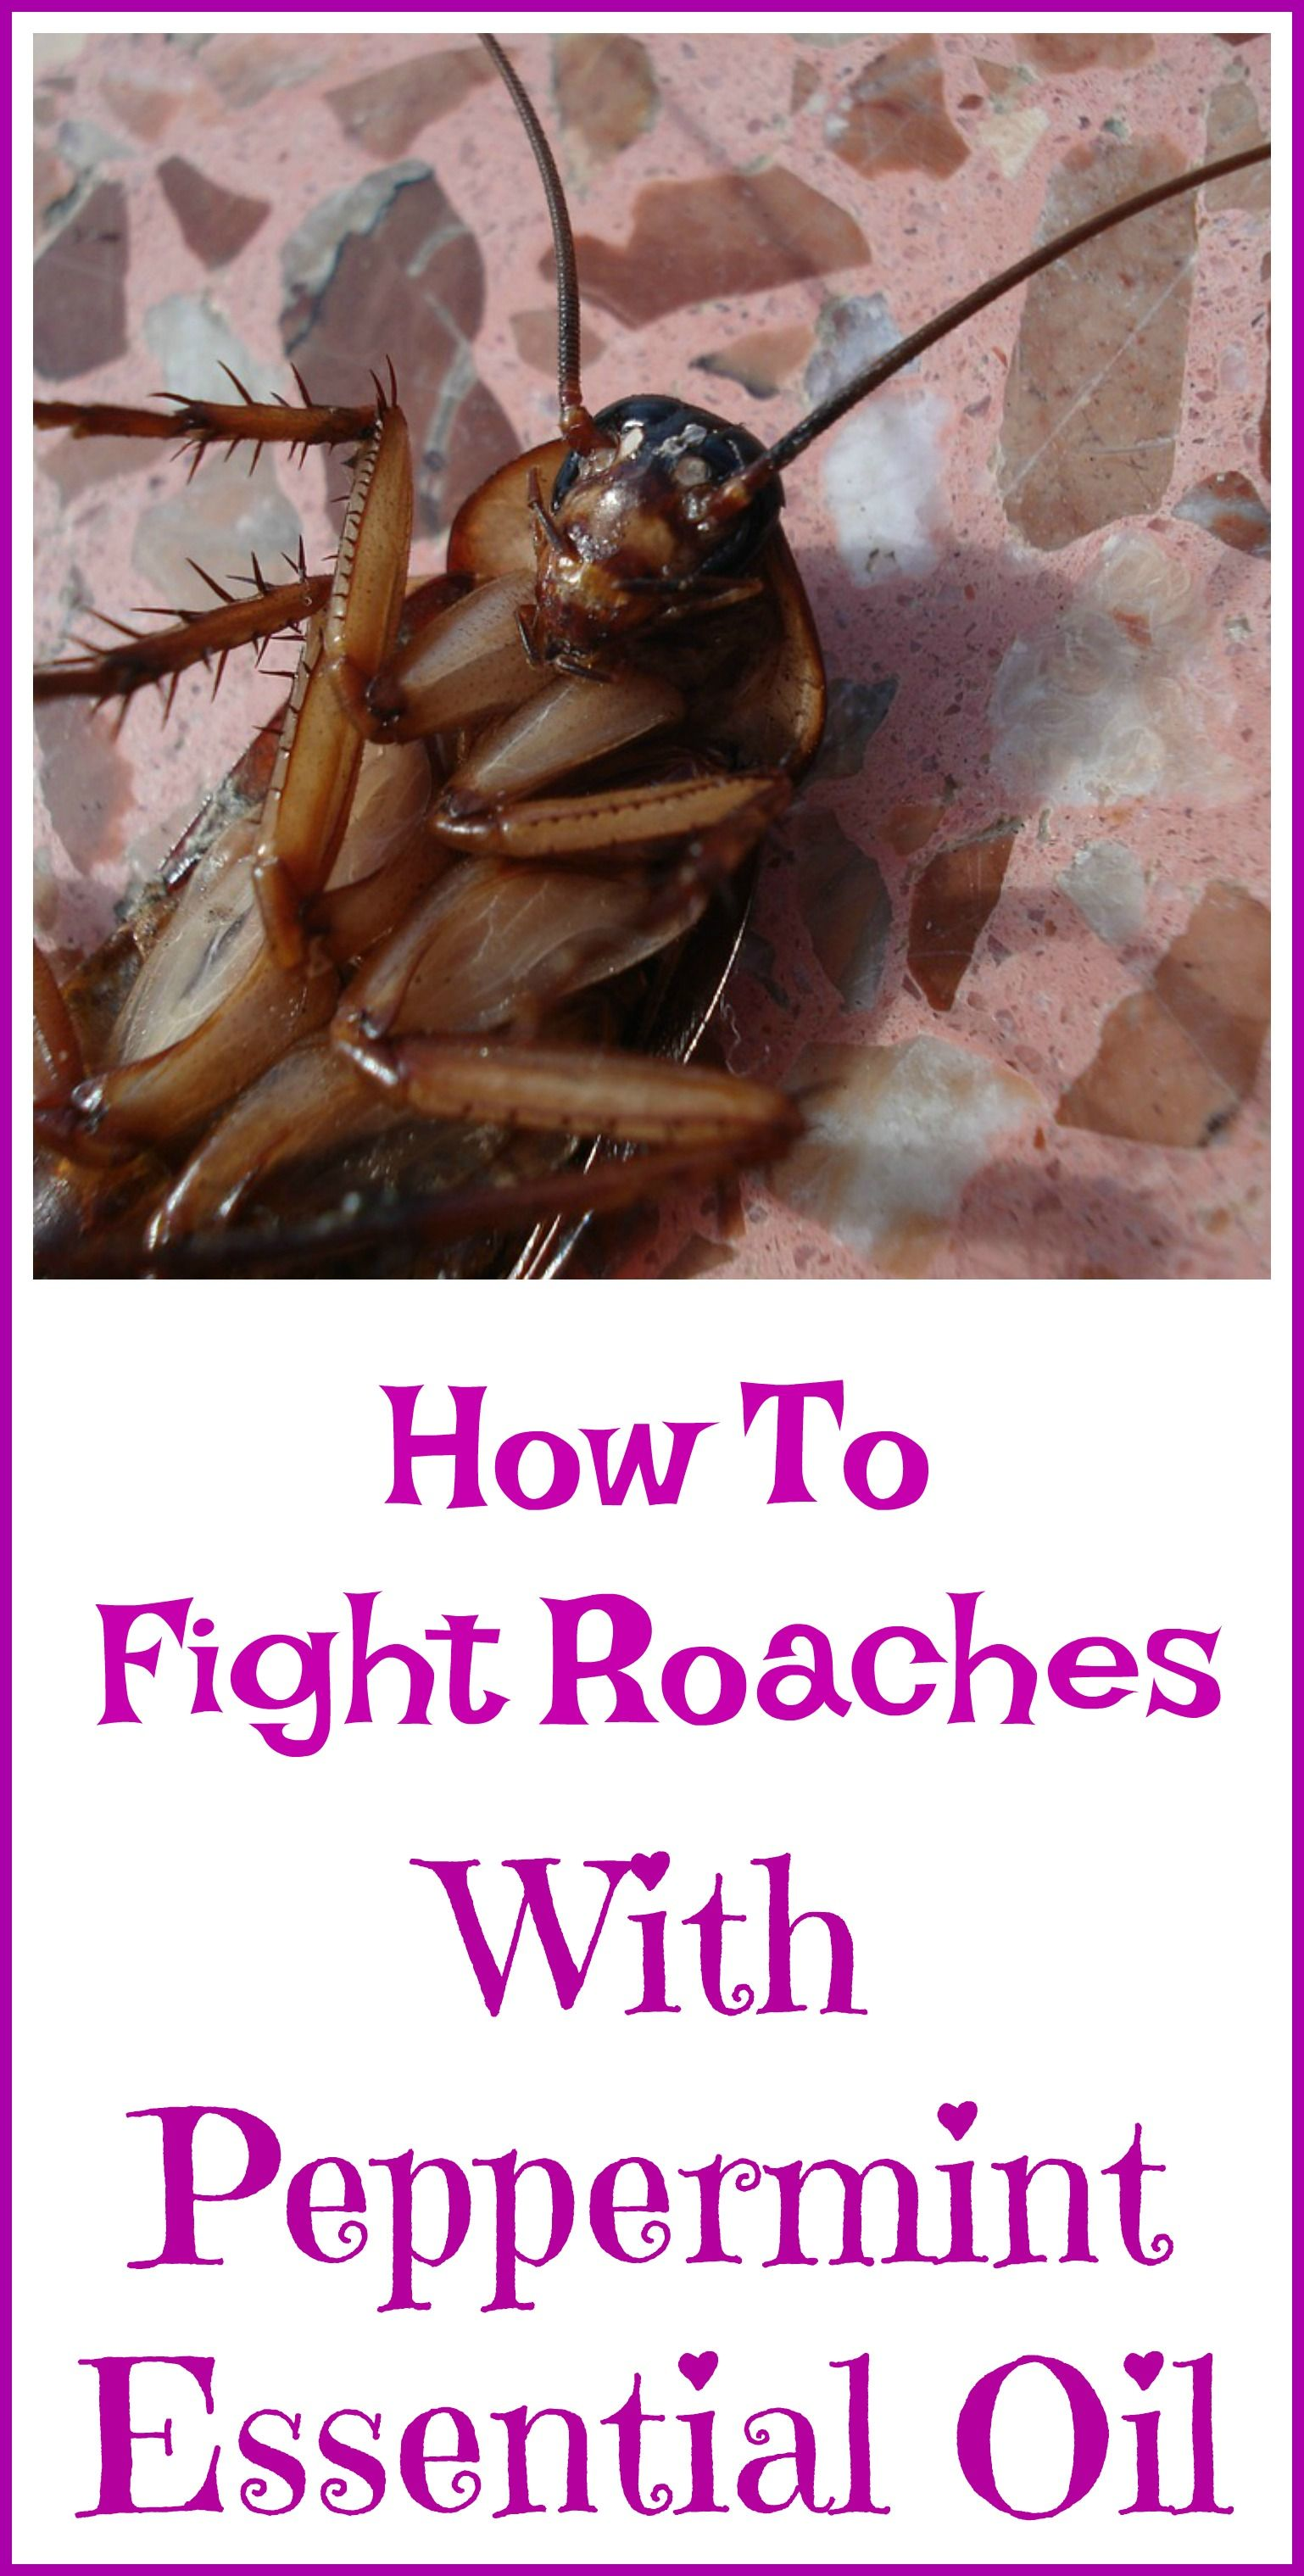 Peppermint Oil For Roaches Pepermint Oil Uses Holistic Healing